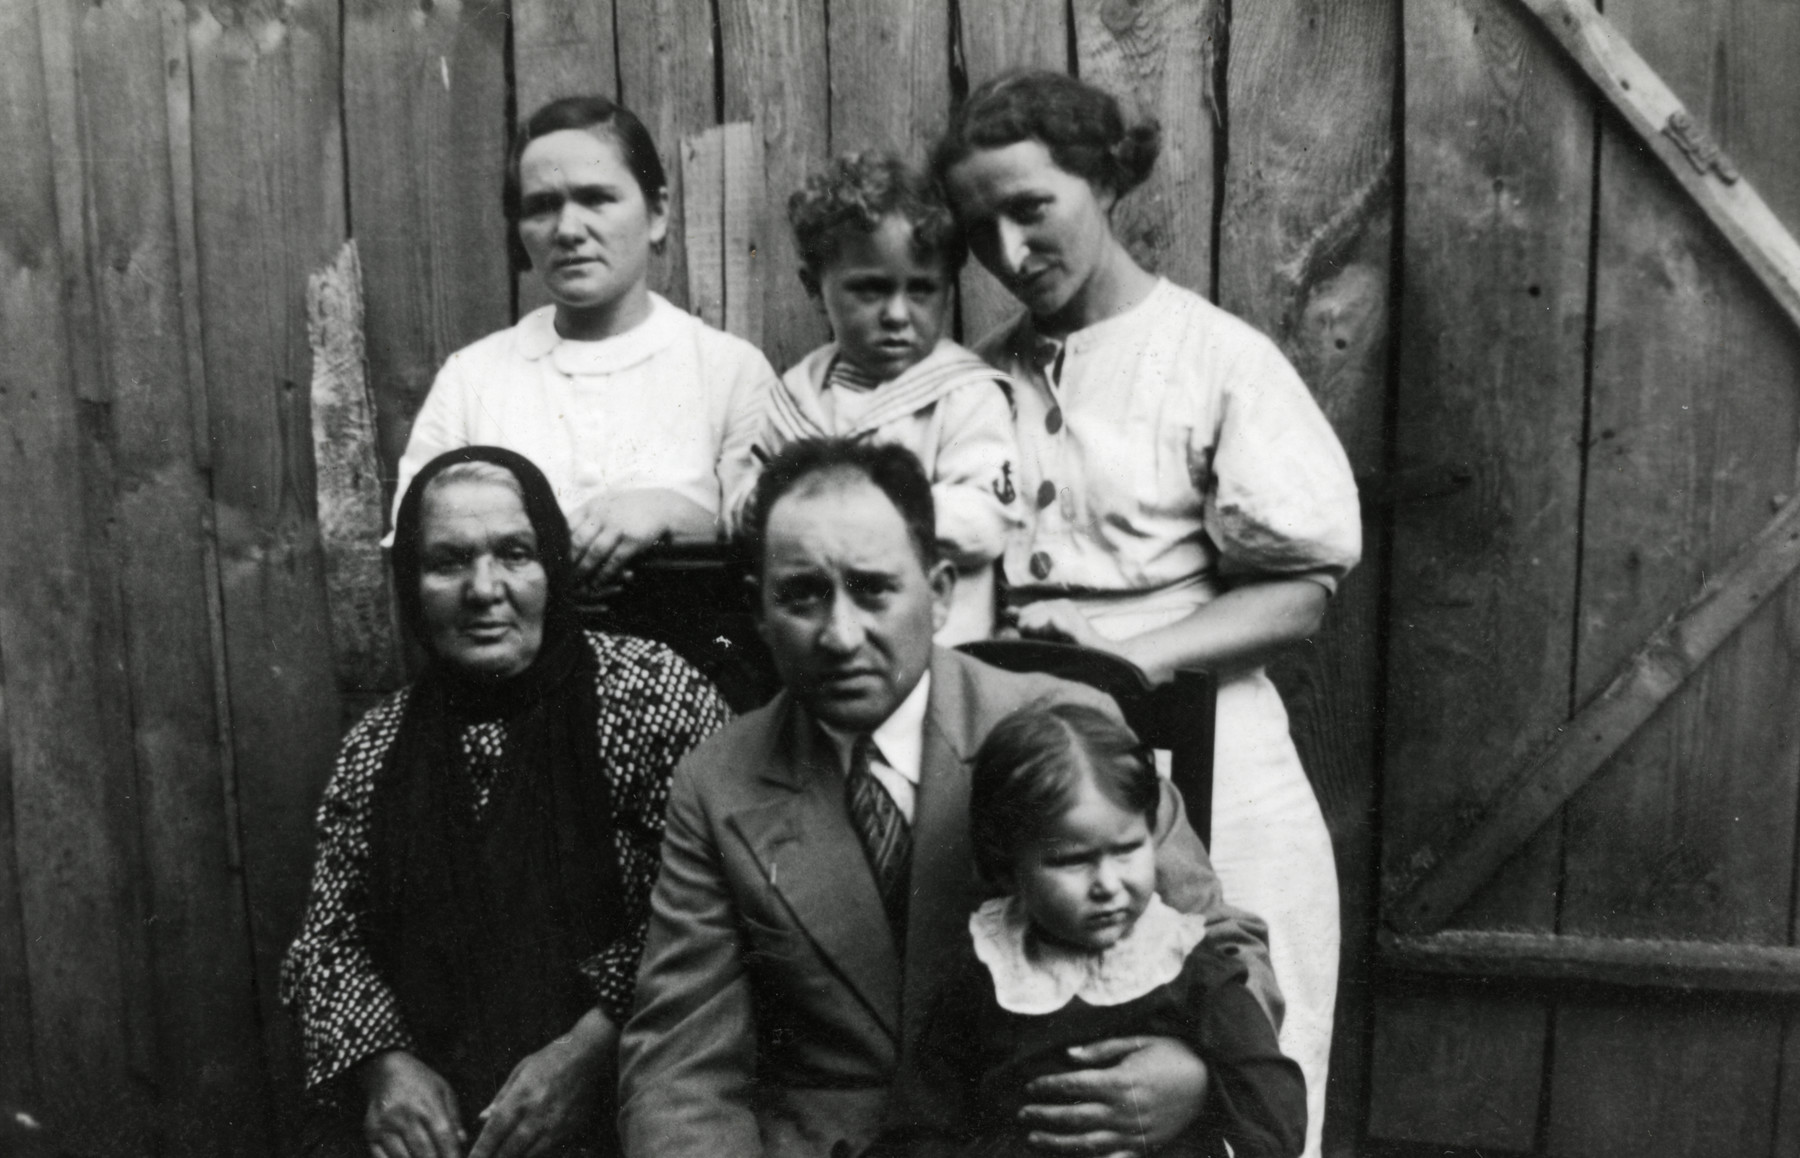 Prewar portrait of an extended Lithuanian Jewish family.  Seated from left to right are Bella Kaplan (grandmother of the donor), Shmuel Siderer (uncle) and his daughter Rivke.  Standing are Liba Siderer (sister of Israel Kaplan), Shalom Kaplan (the donor) and Leah Kaplan.  Other than the donor, everyone else perished.